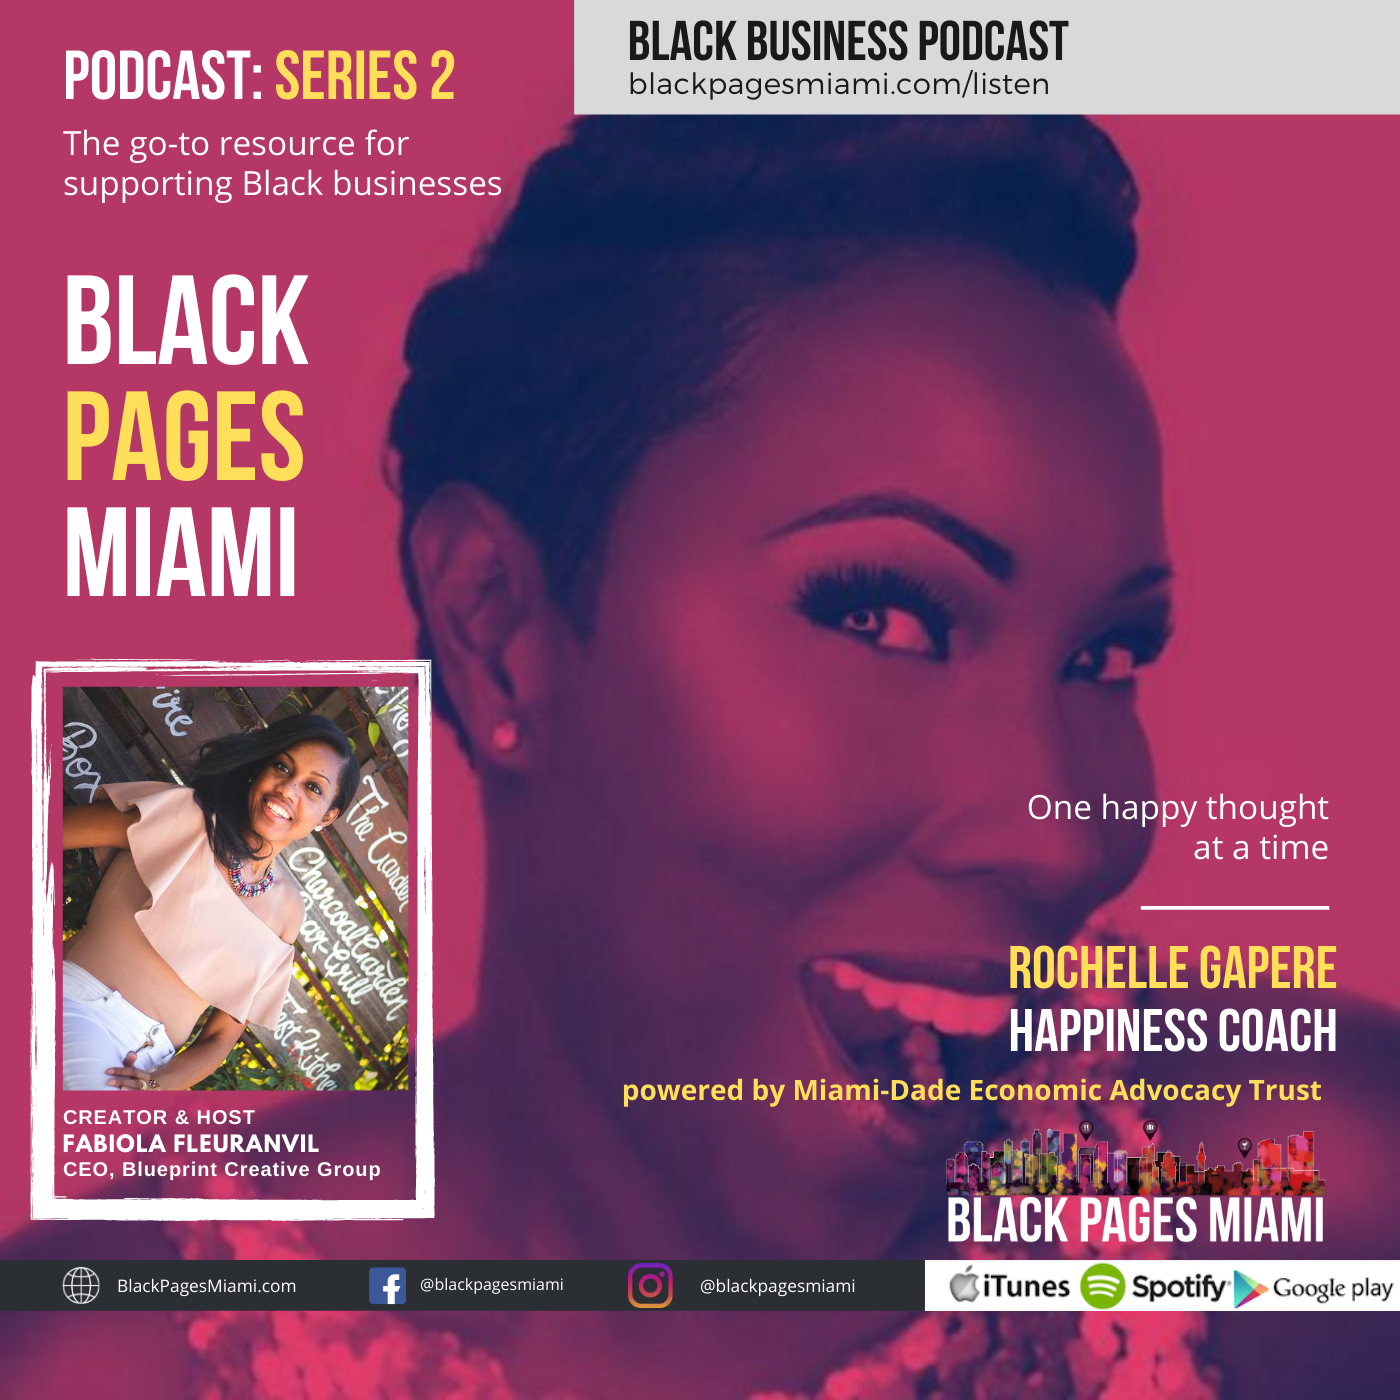 Rochelle Gapere, Happiness Coach, BlackPagesMiami